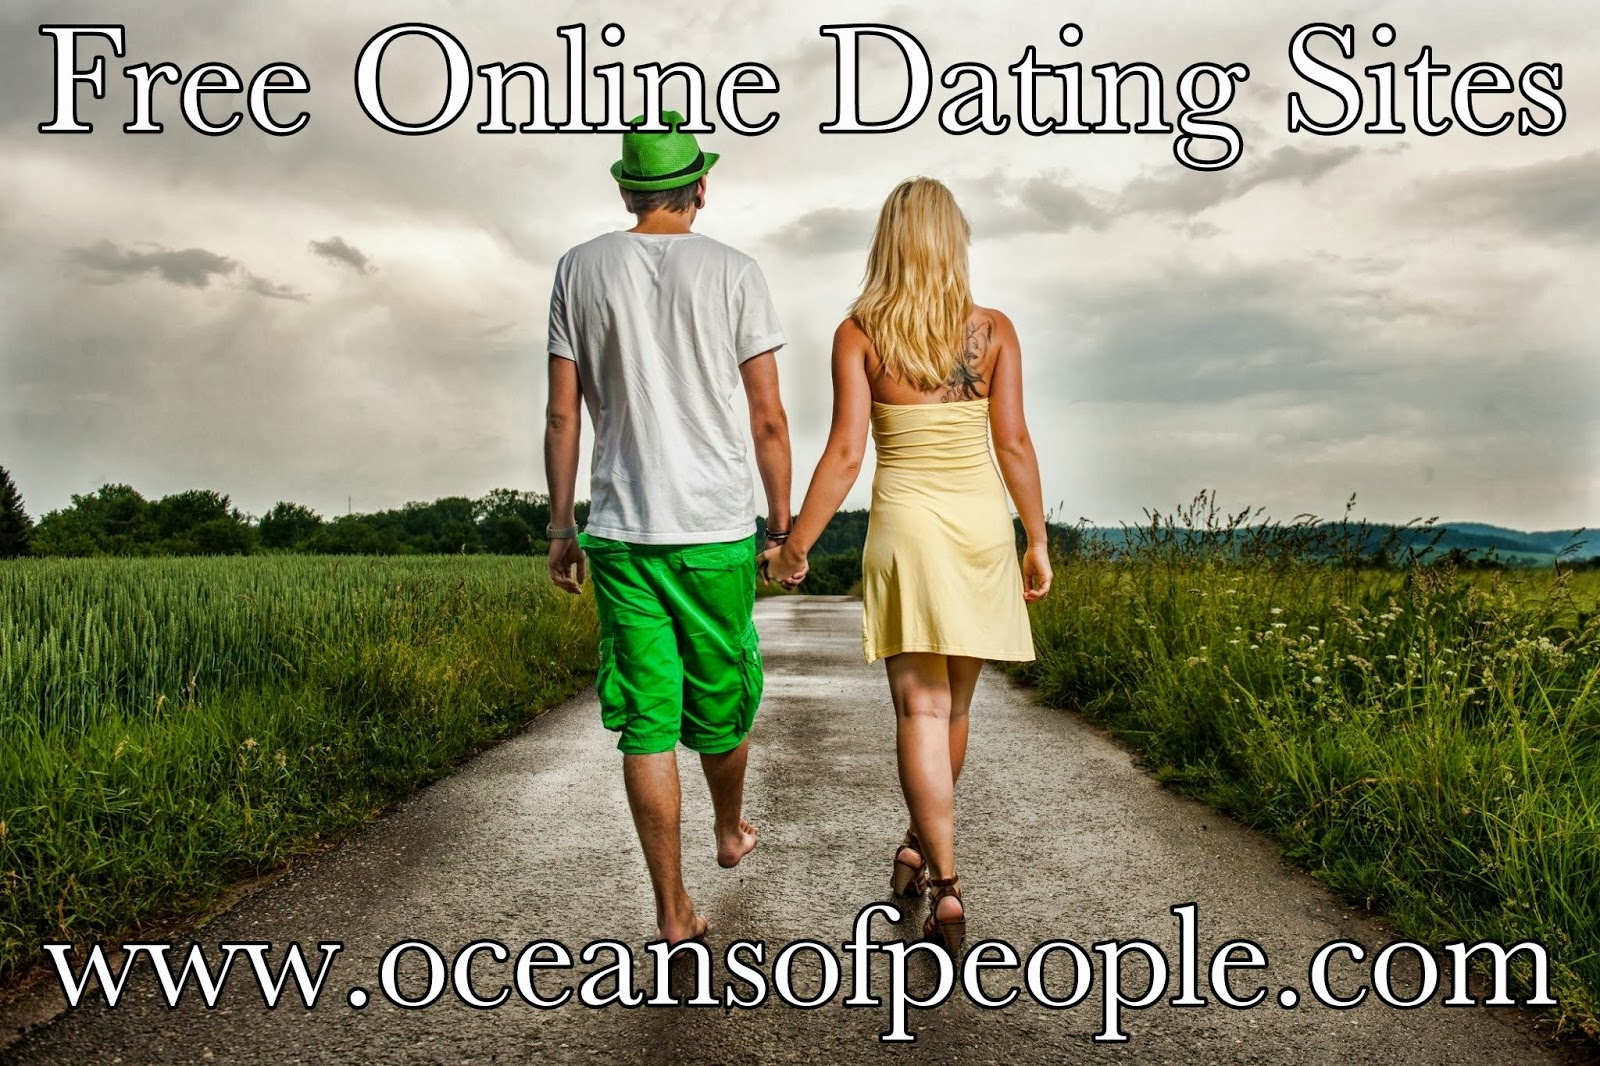 free singles websites dating Free singles dating websites - if you are looking for serious relationship, then you come to the right place join our site to chat and meet new people.